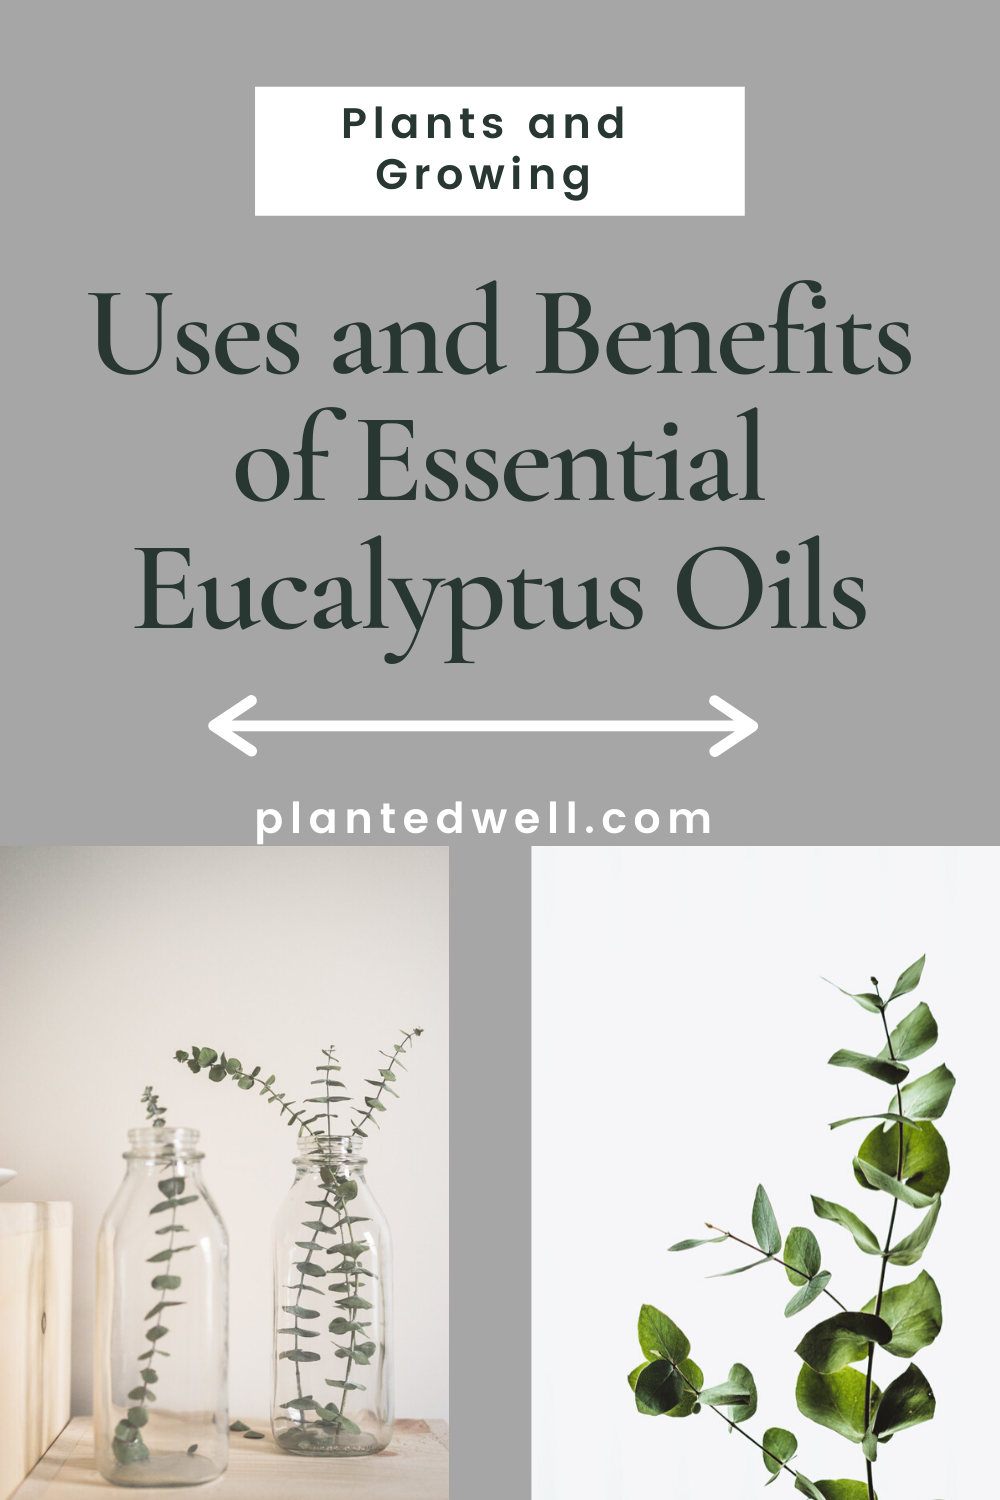 Uses And Benefits Of Essential Eucalyptus Oils In 2020 Eucalyptus Oil Types Of Tea Eucalyptus Oil Benefits